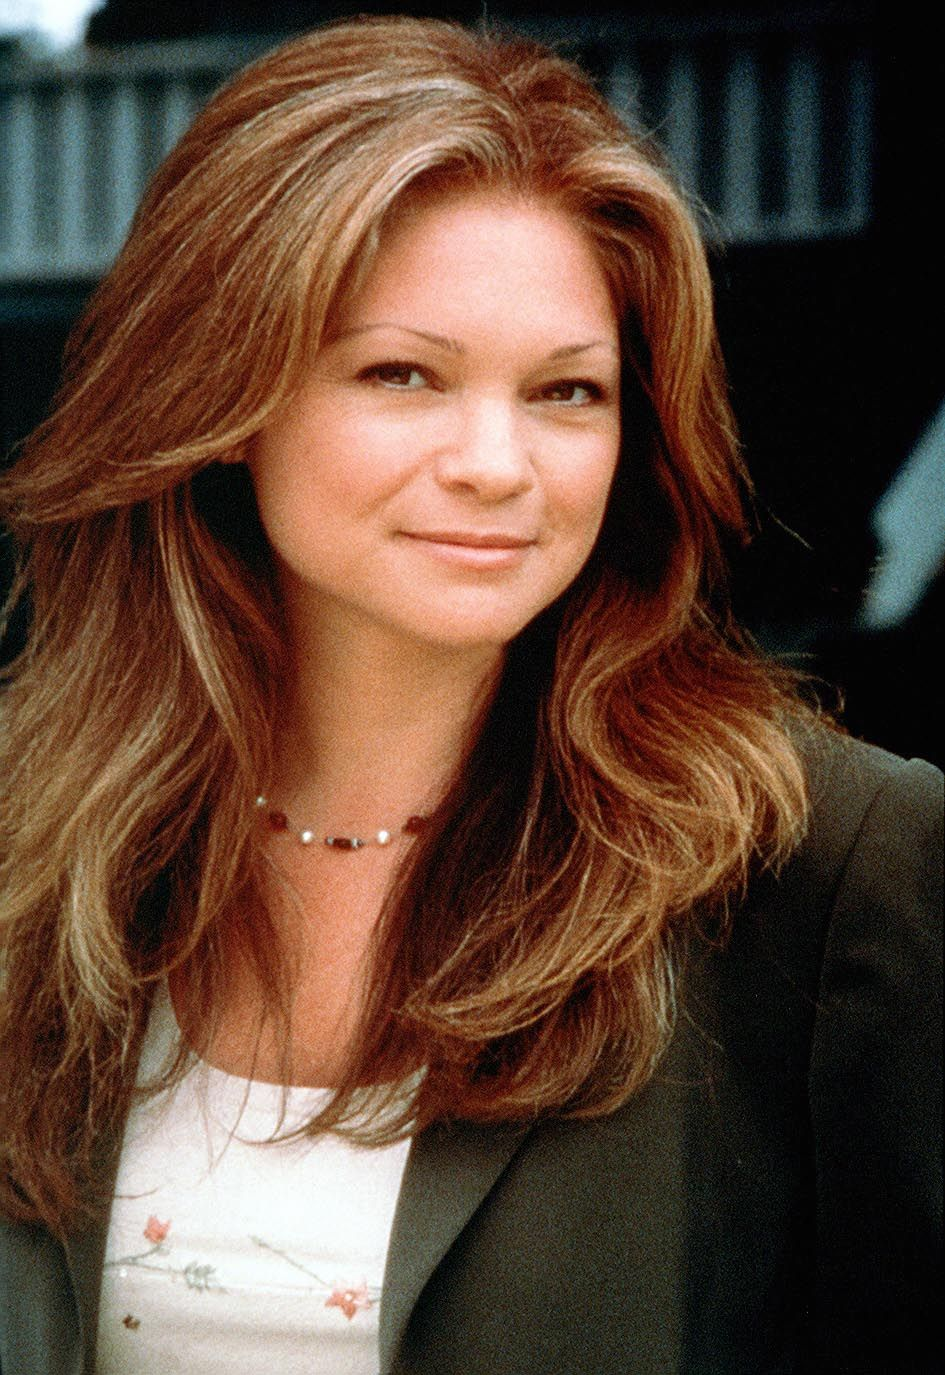 Valerie Bertinelli Actress Valerie Anne Bertinelli Is An American Actress She Is Known For H Blonde Actresses Valerie Bertinelli Hair Highlights And Lowlights